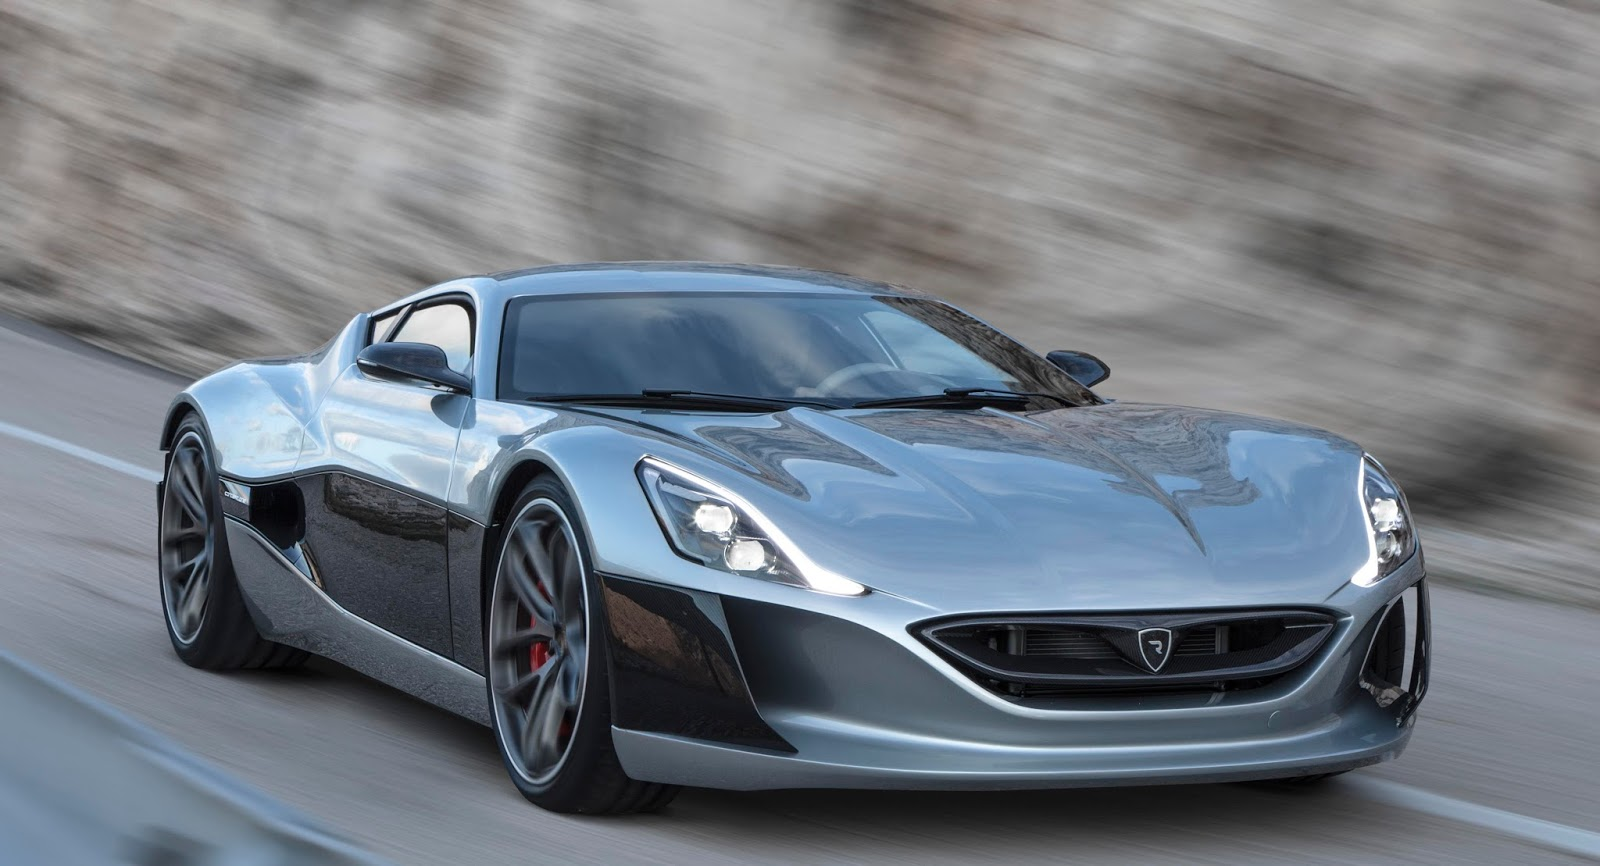 The Rimac Concept One Also Styled Is A Two Seat High Performance Electric Sports Car Designed And Manufactured By Automobili